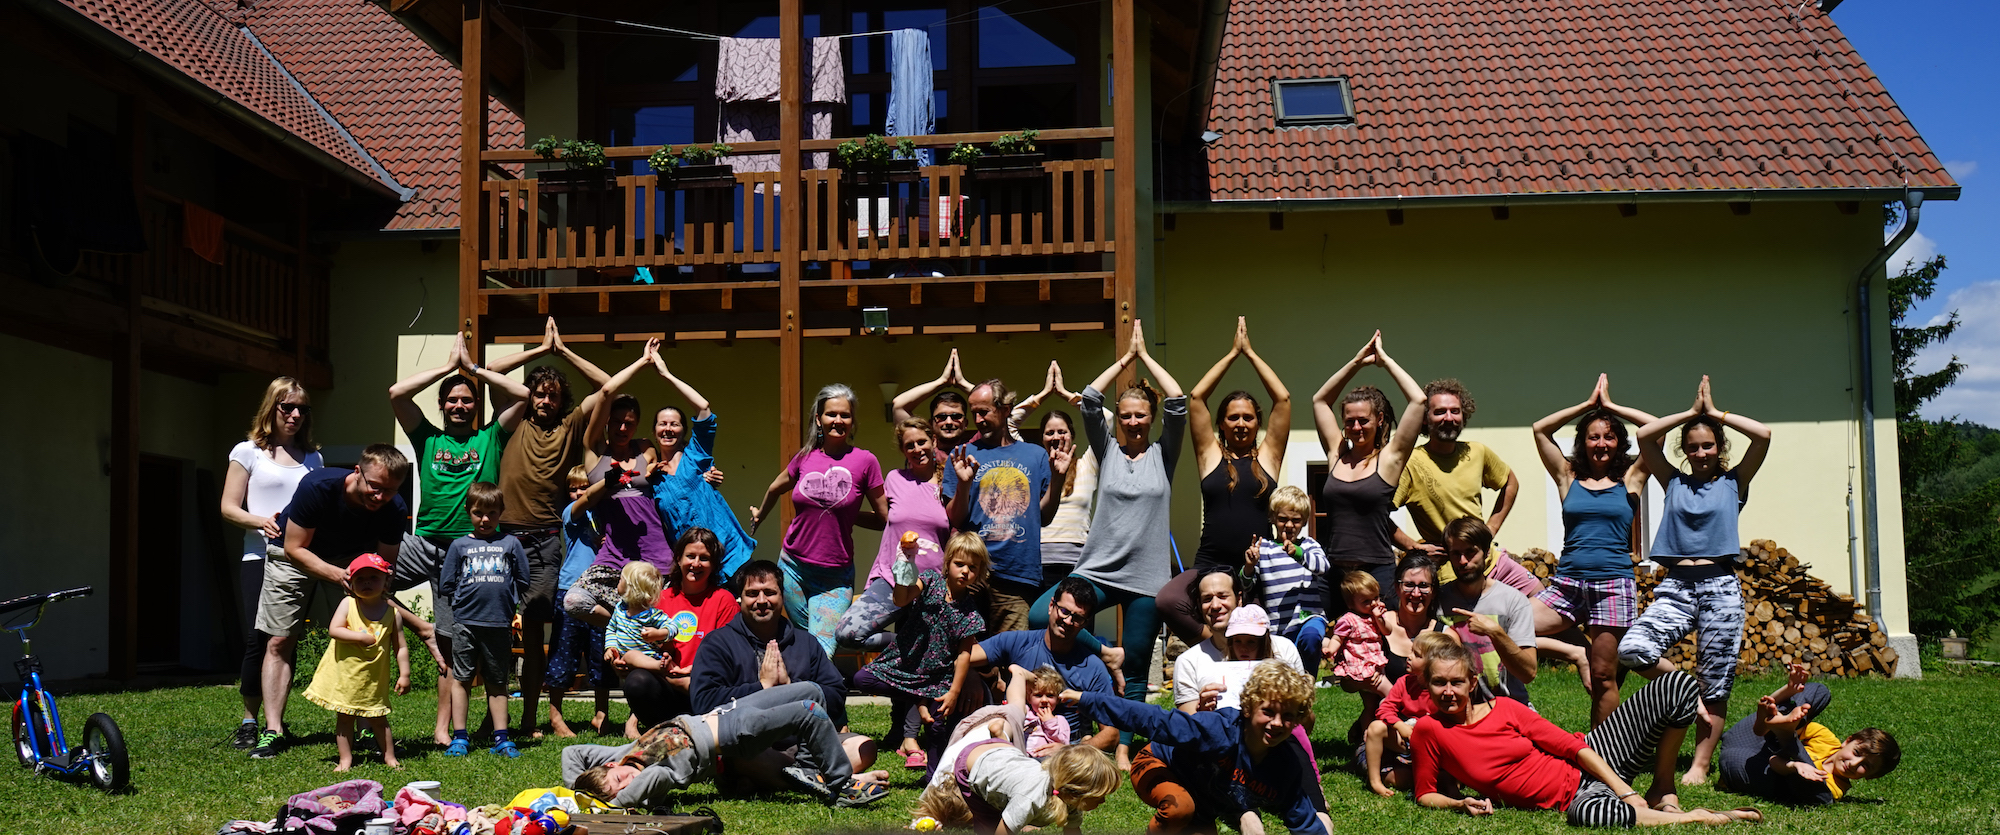 Yantra Yoga Holidays at Phendeling, Czech Republic in 2018